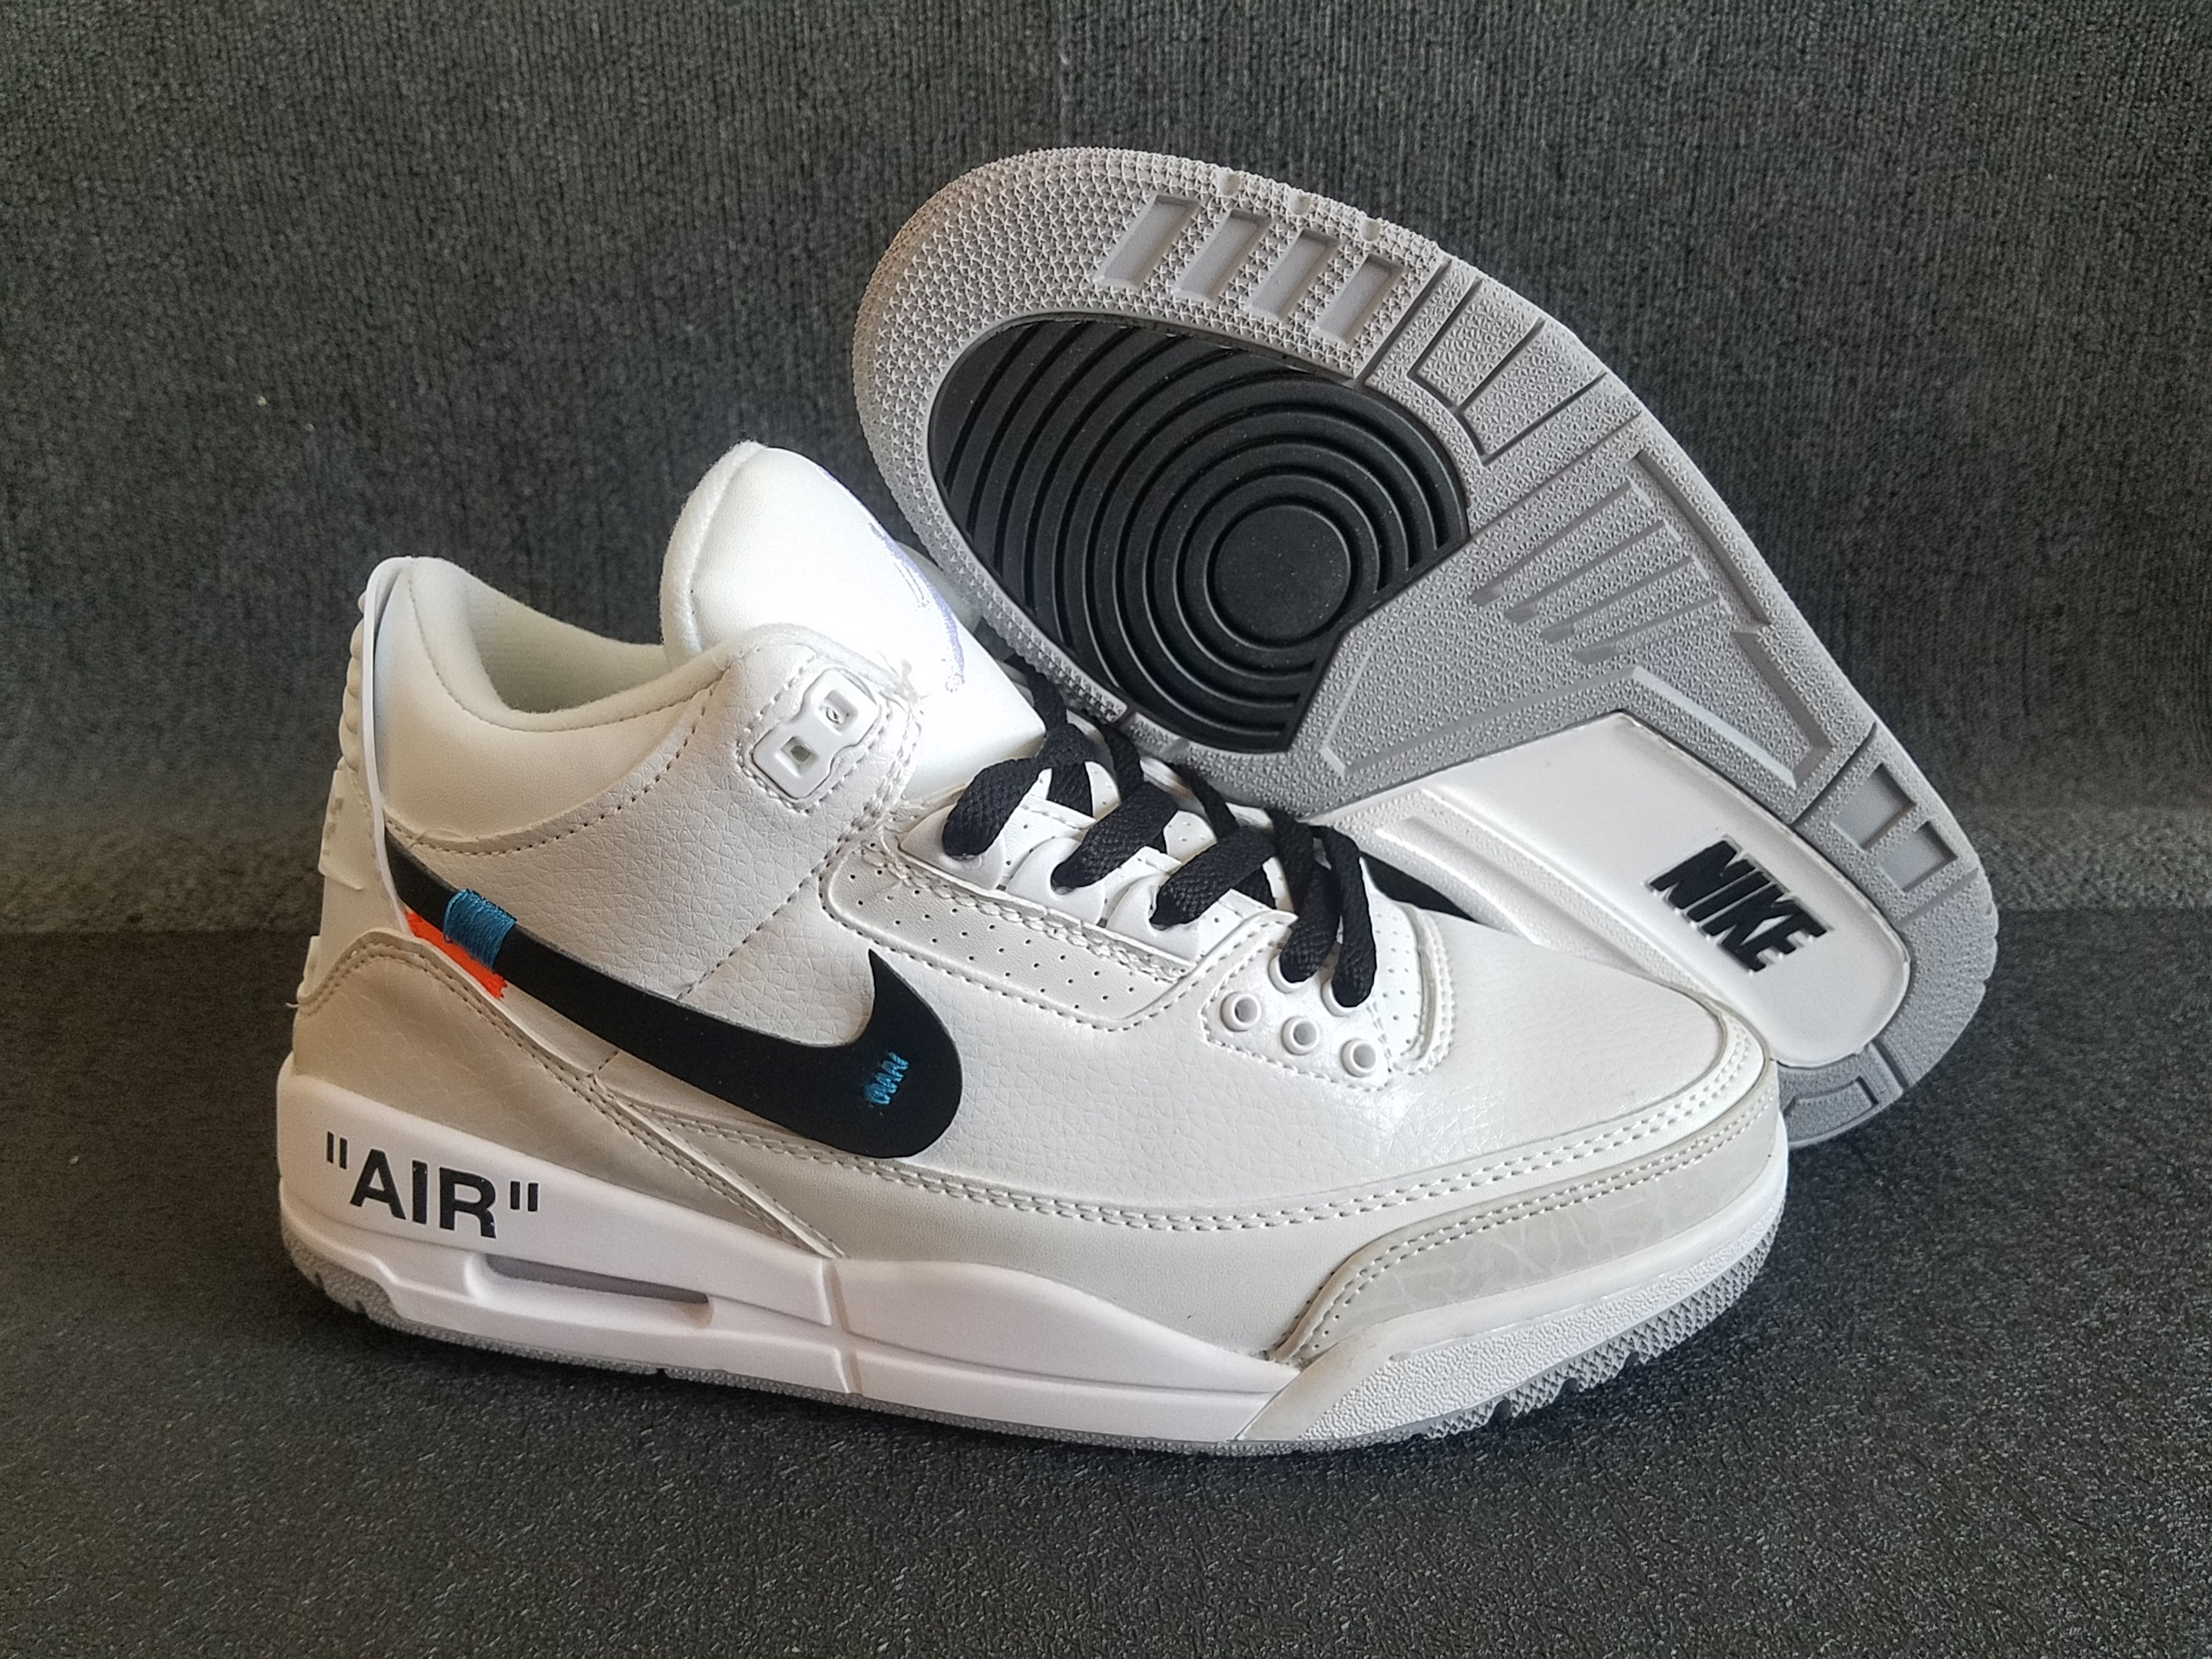 online store ced22 20789 Off-white Air Jordan 3 Retro 2018 Mens Air Jordans Retro 3s Basketball  Shoes XY137 - Getfashionsstore.